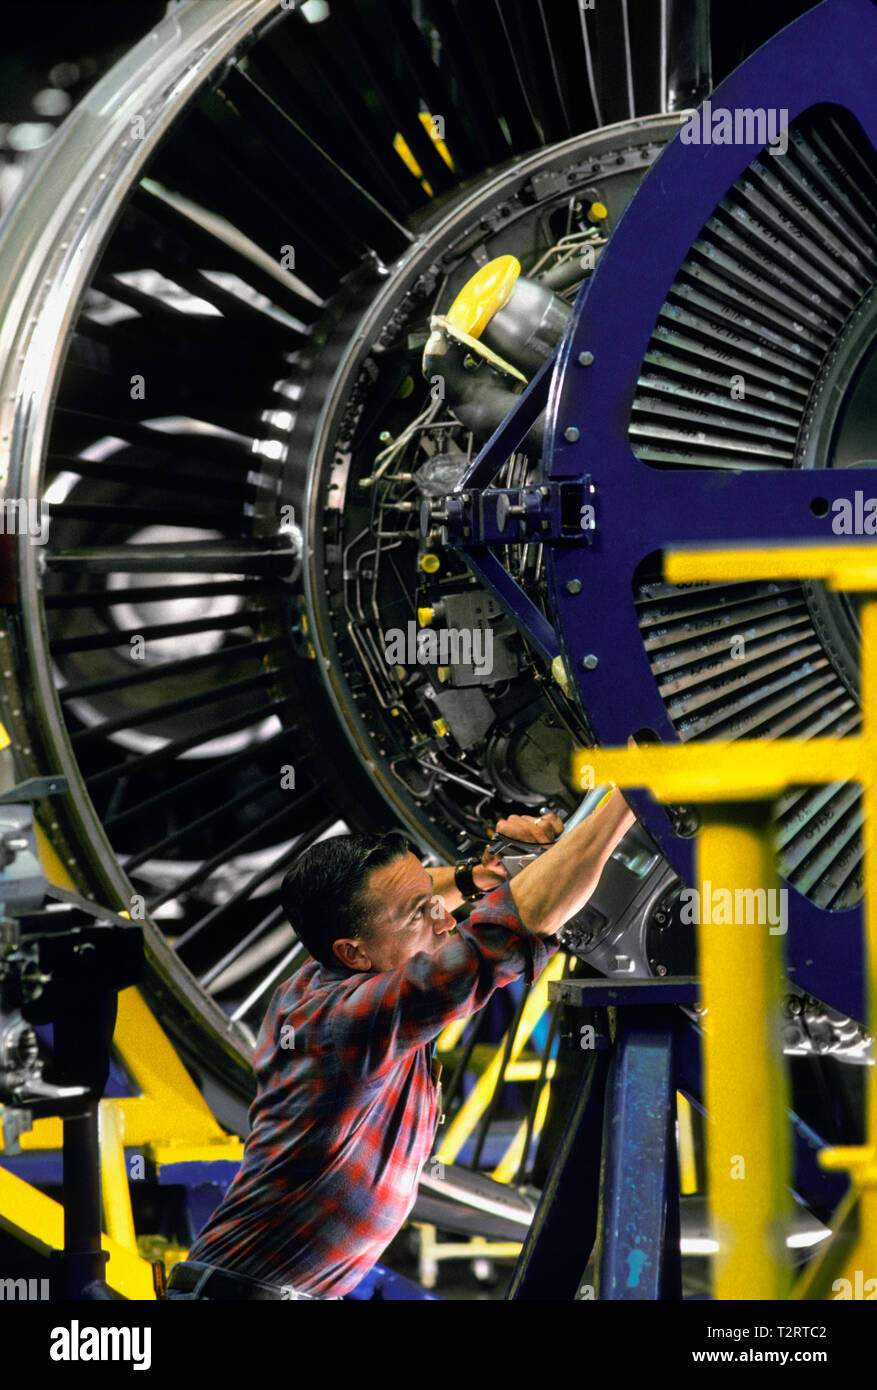 Skilled workman installing a part in a jet engine at the Pratt and Whitney factory in Connecticut, USA, Stock Photo